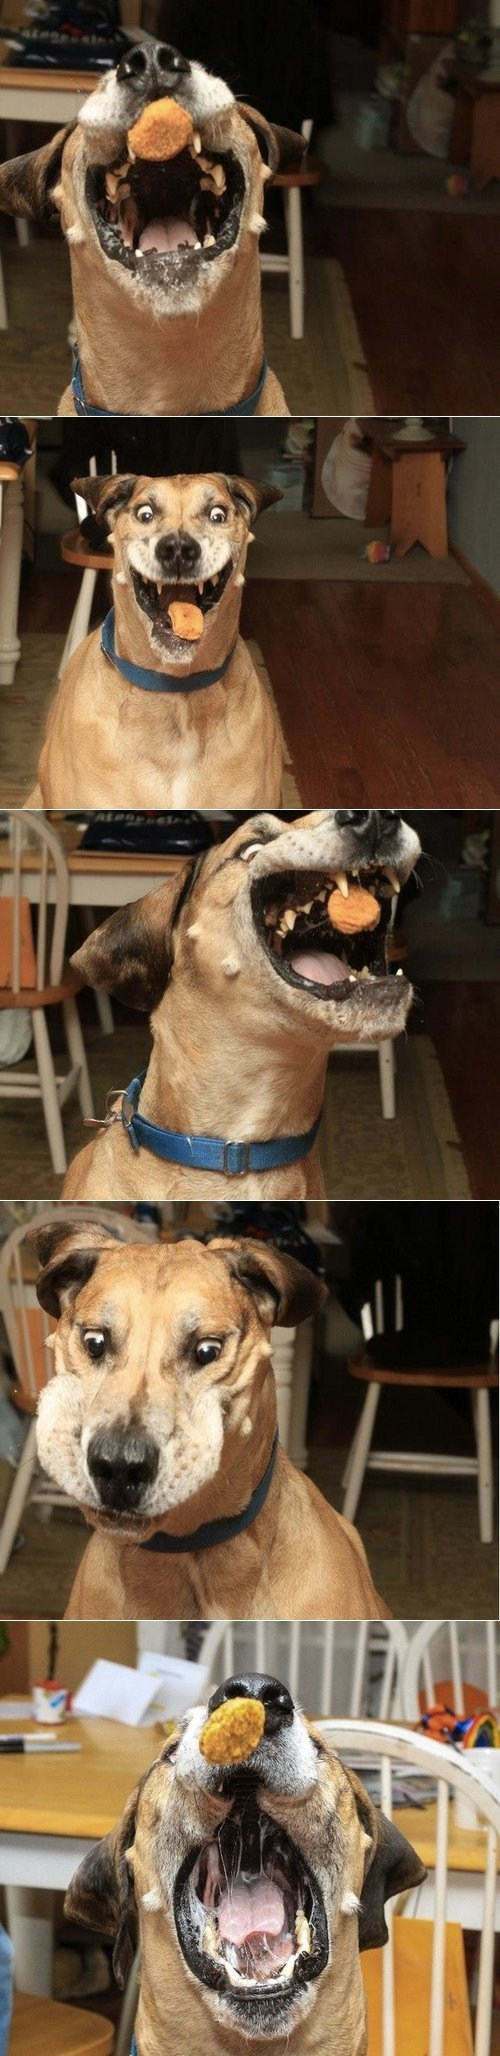 chicken nuggets derp dogs